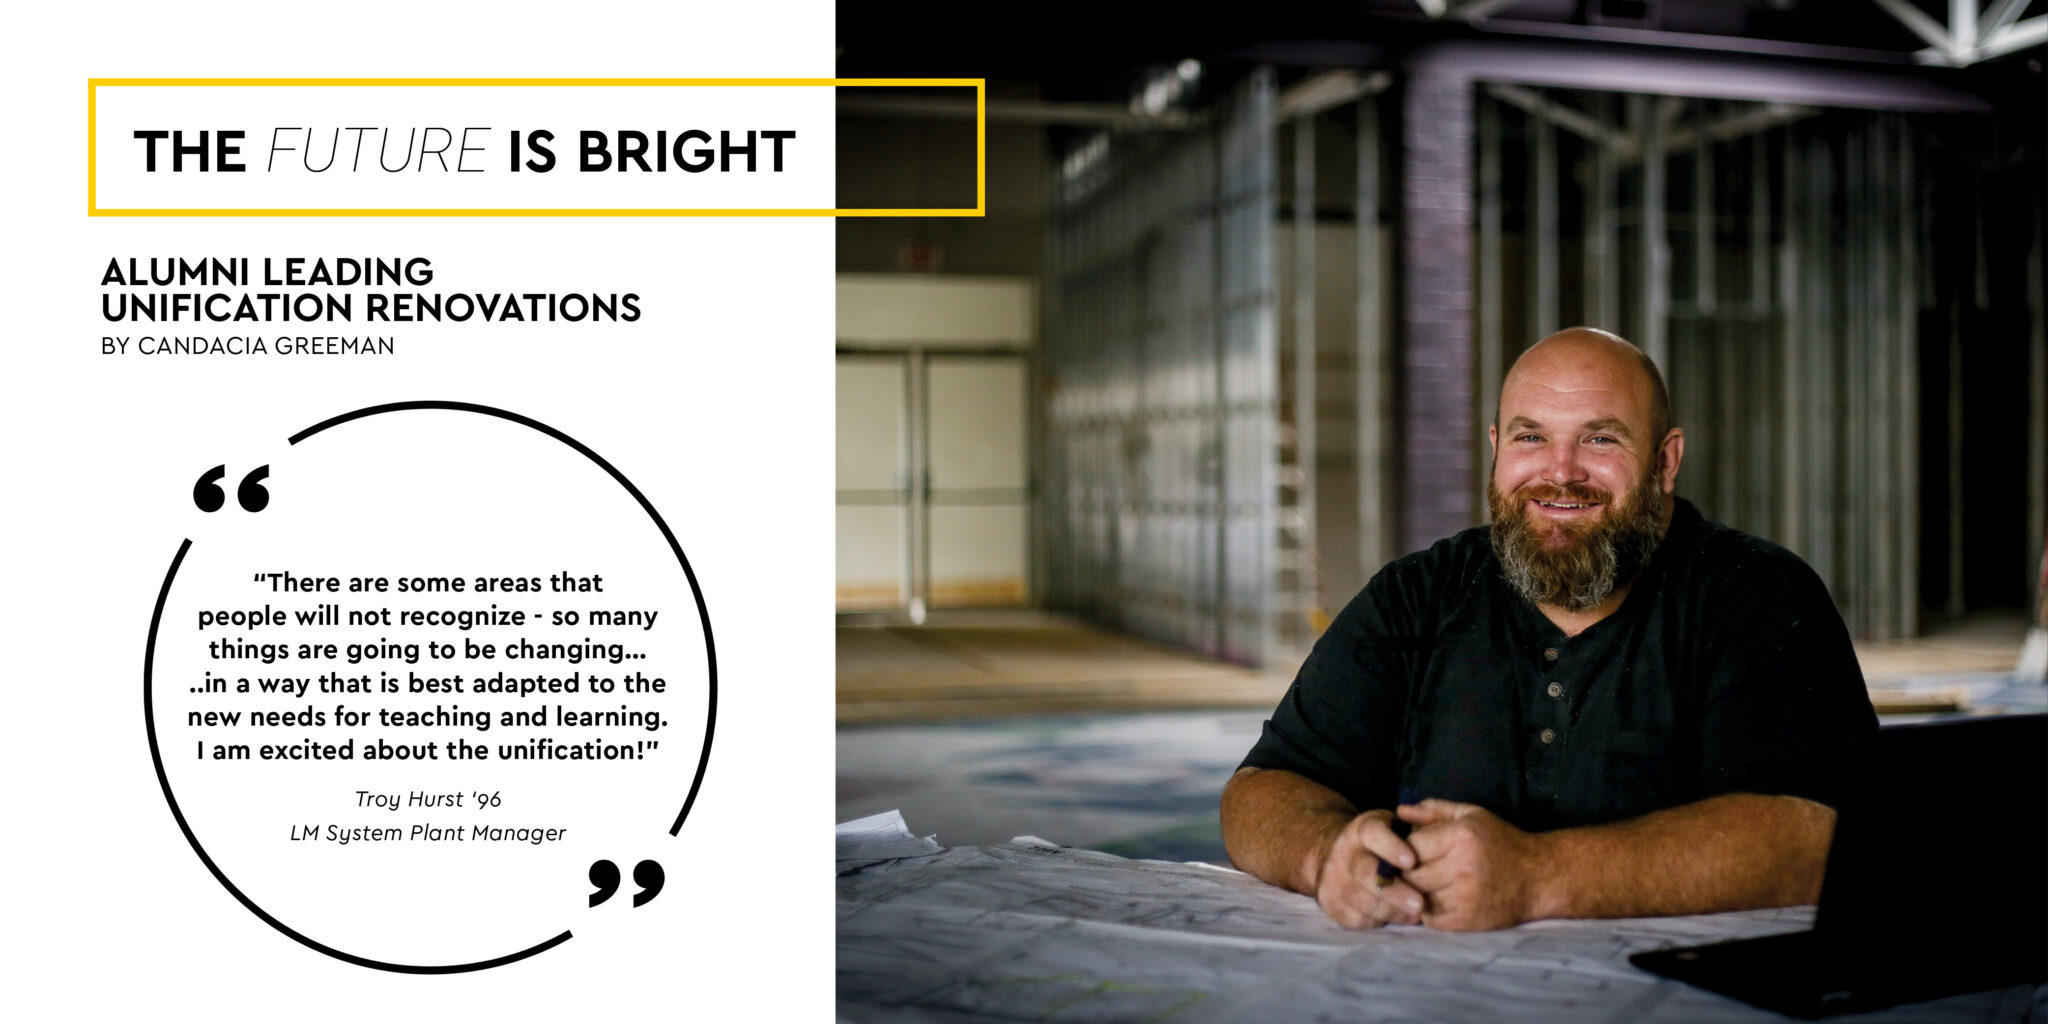 troy hurst in construction area with quote from article feature